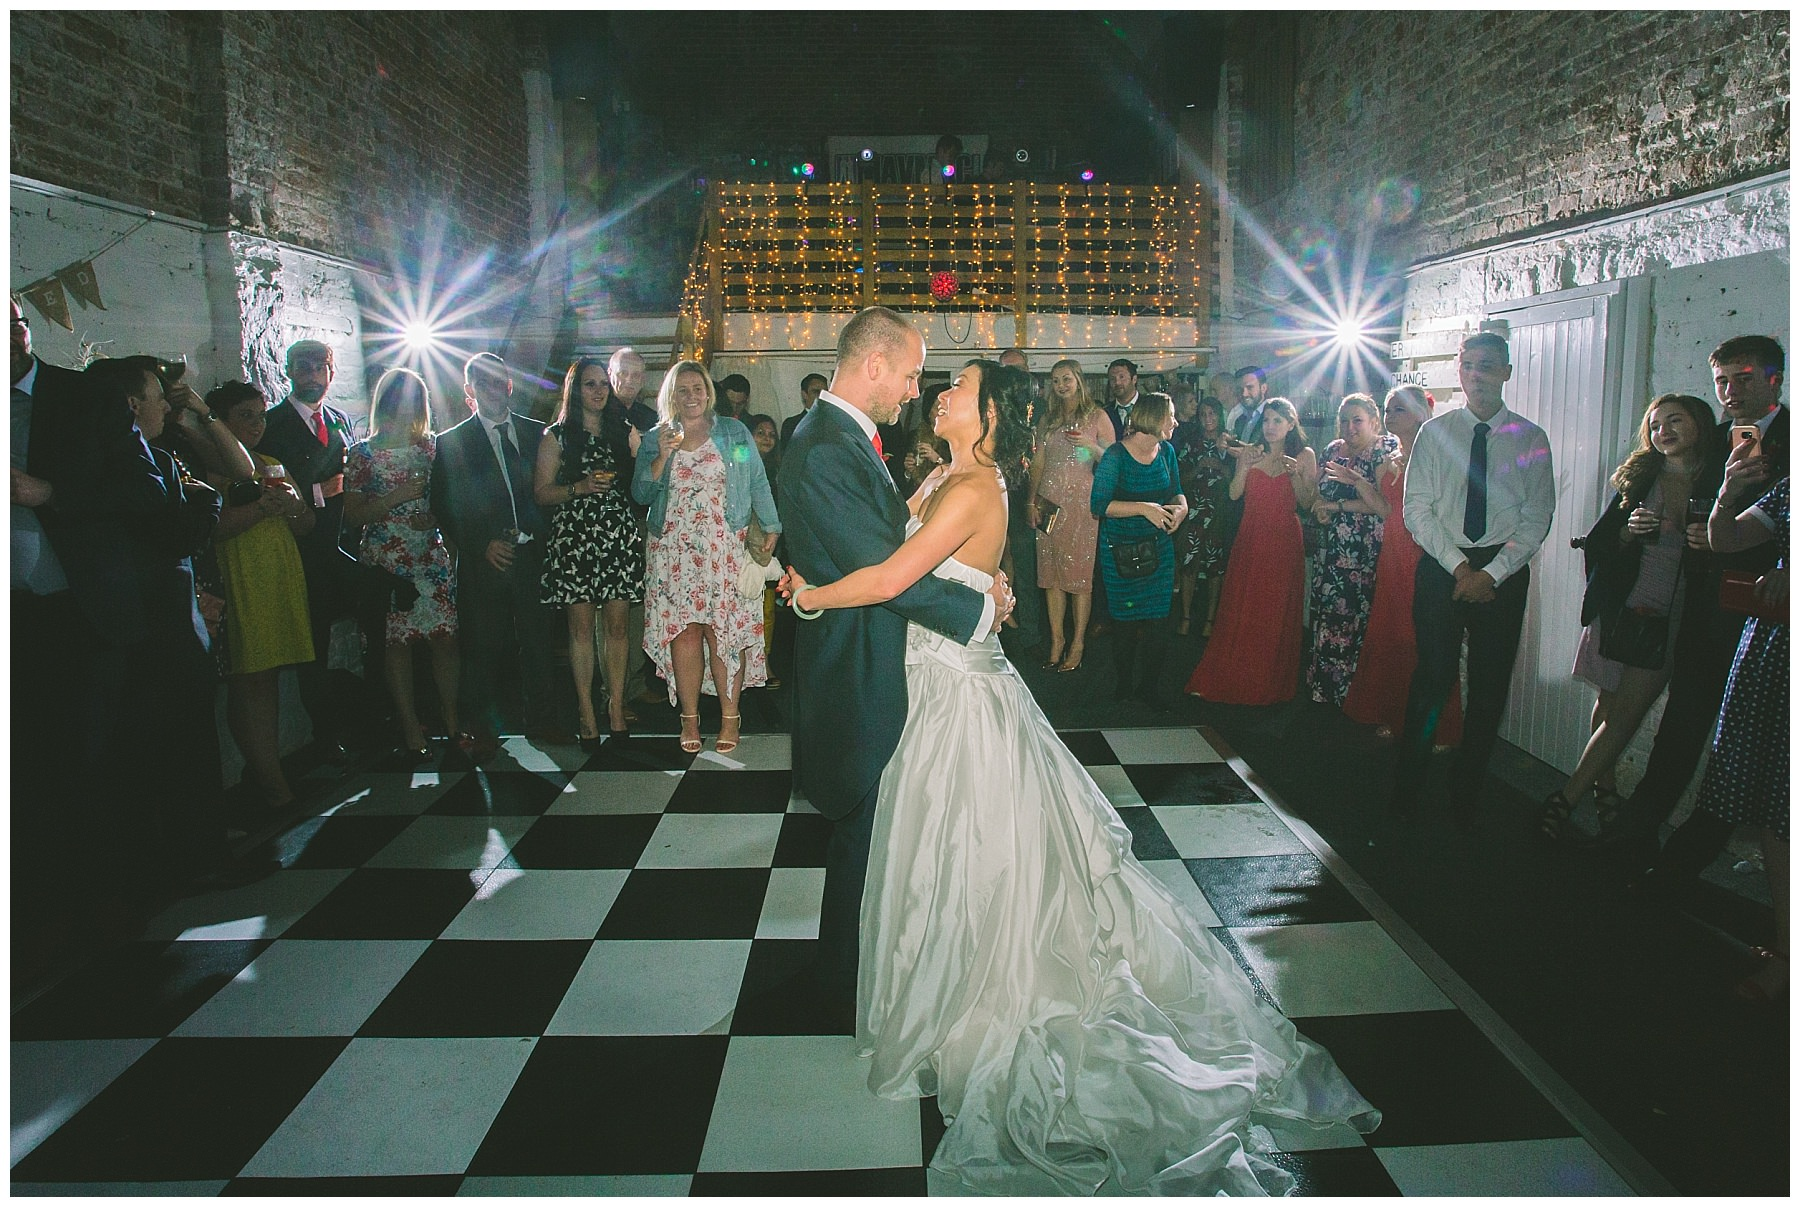 The happy couple take to the floor for their first dance in the barn at Pentre Mawr